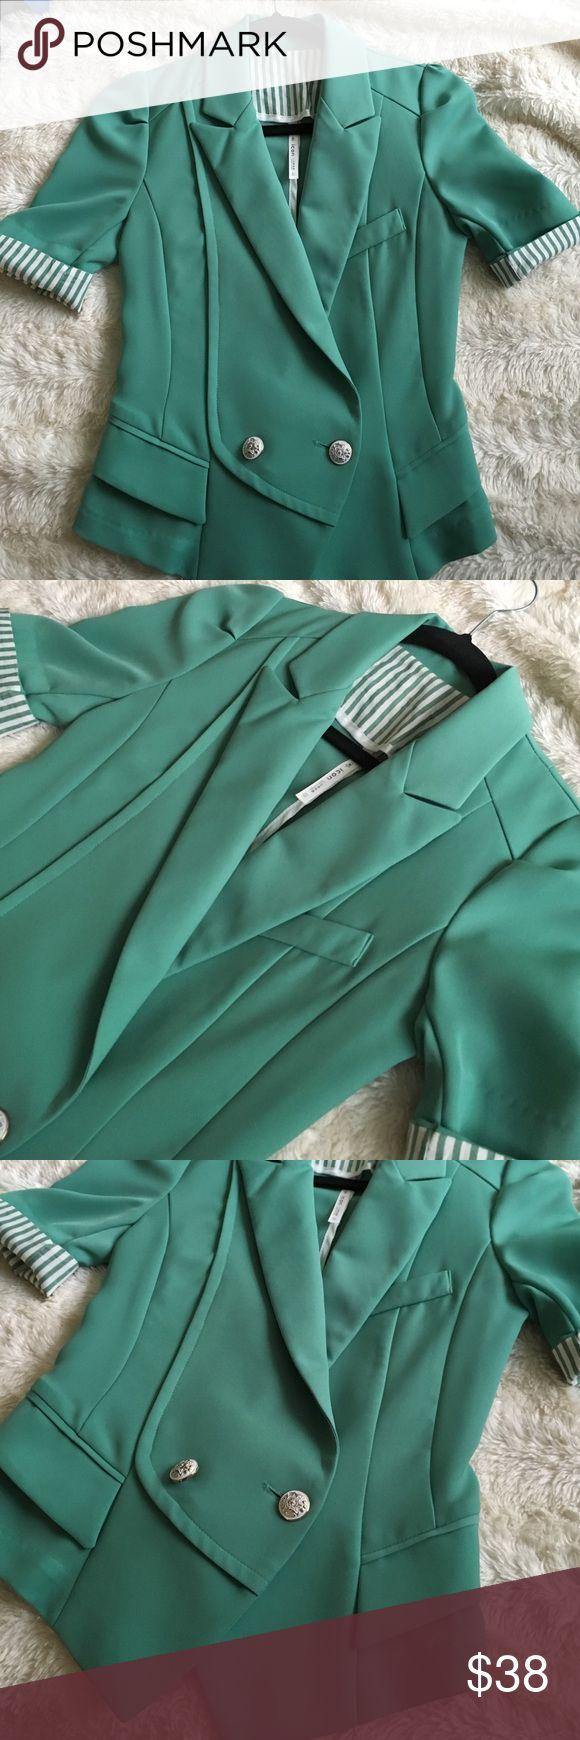 Very cute green blazer Great condition blazer. I bought this from another posher. Super cute but it doesn't fit me since I gained some weight after buying it. I've only worn it once. It is priced so I can make my money back but I am open to offers. ICON Jackets & Coats Blazers